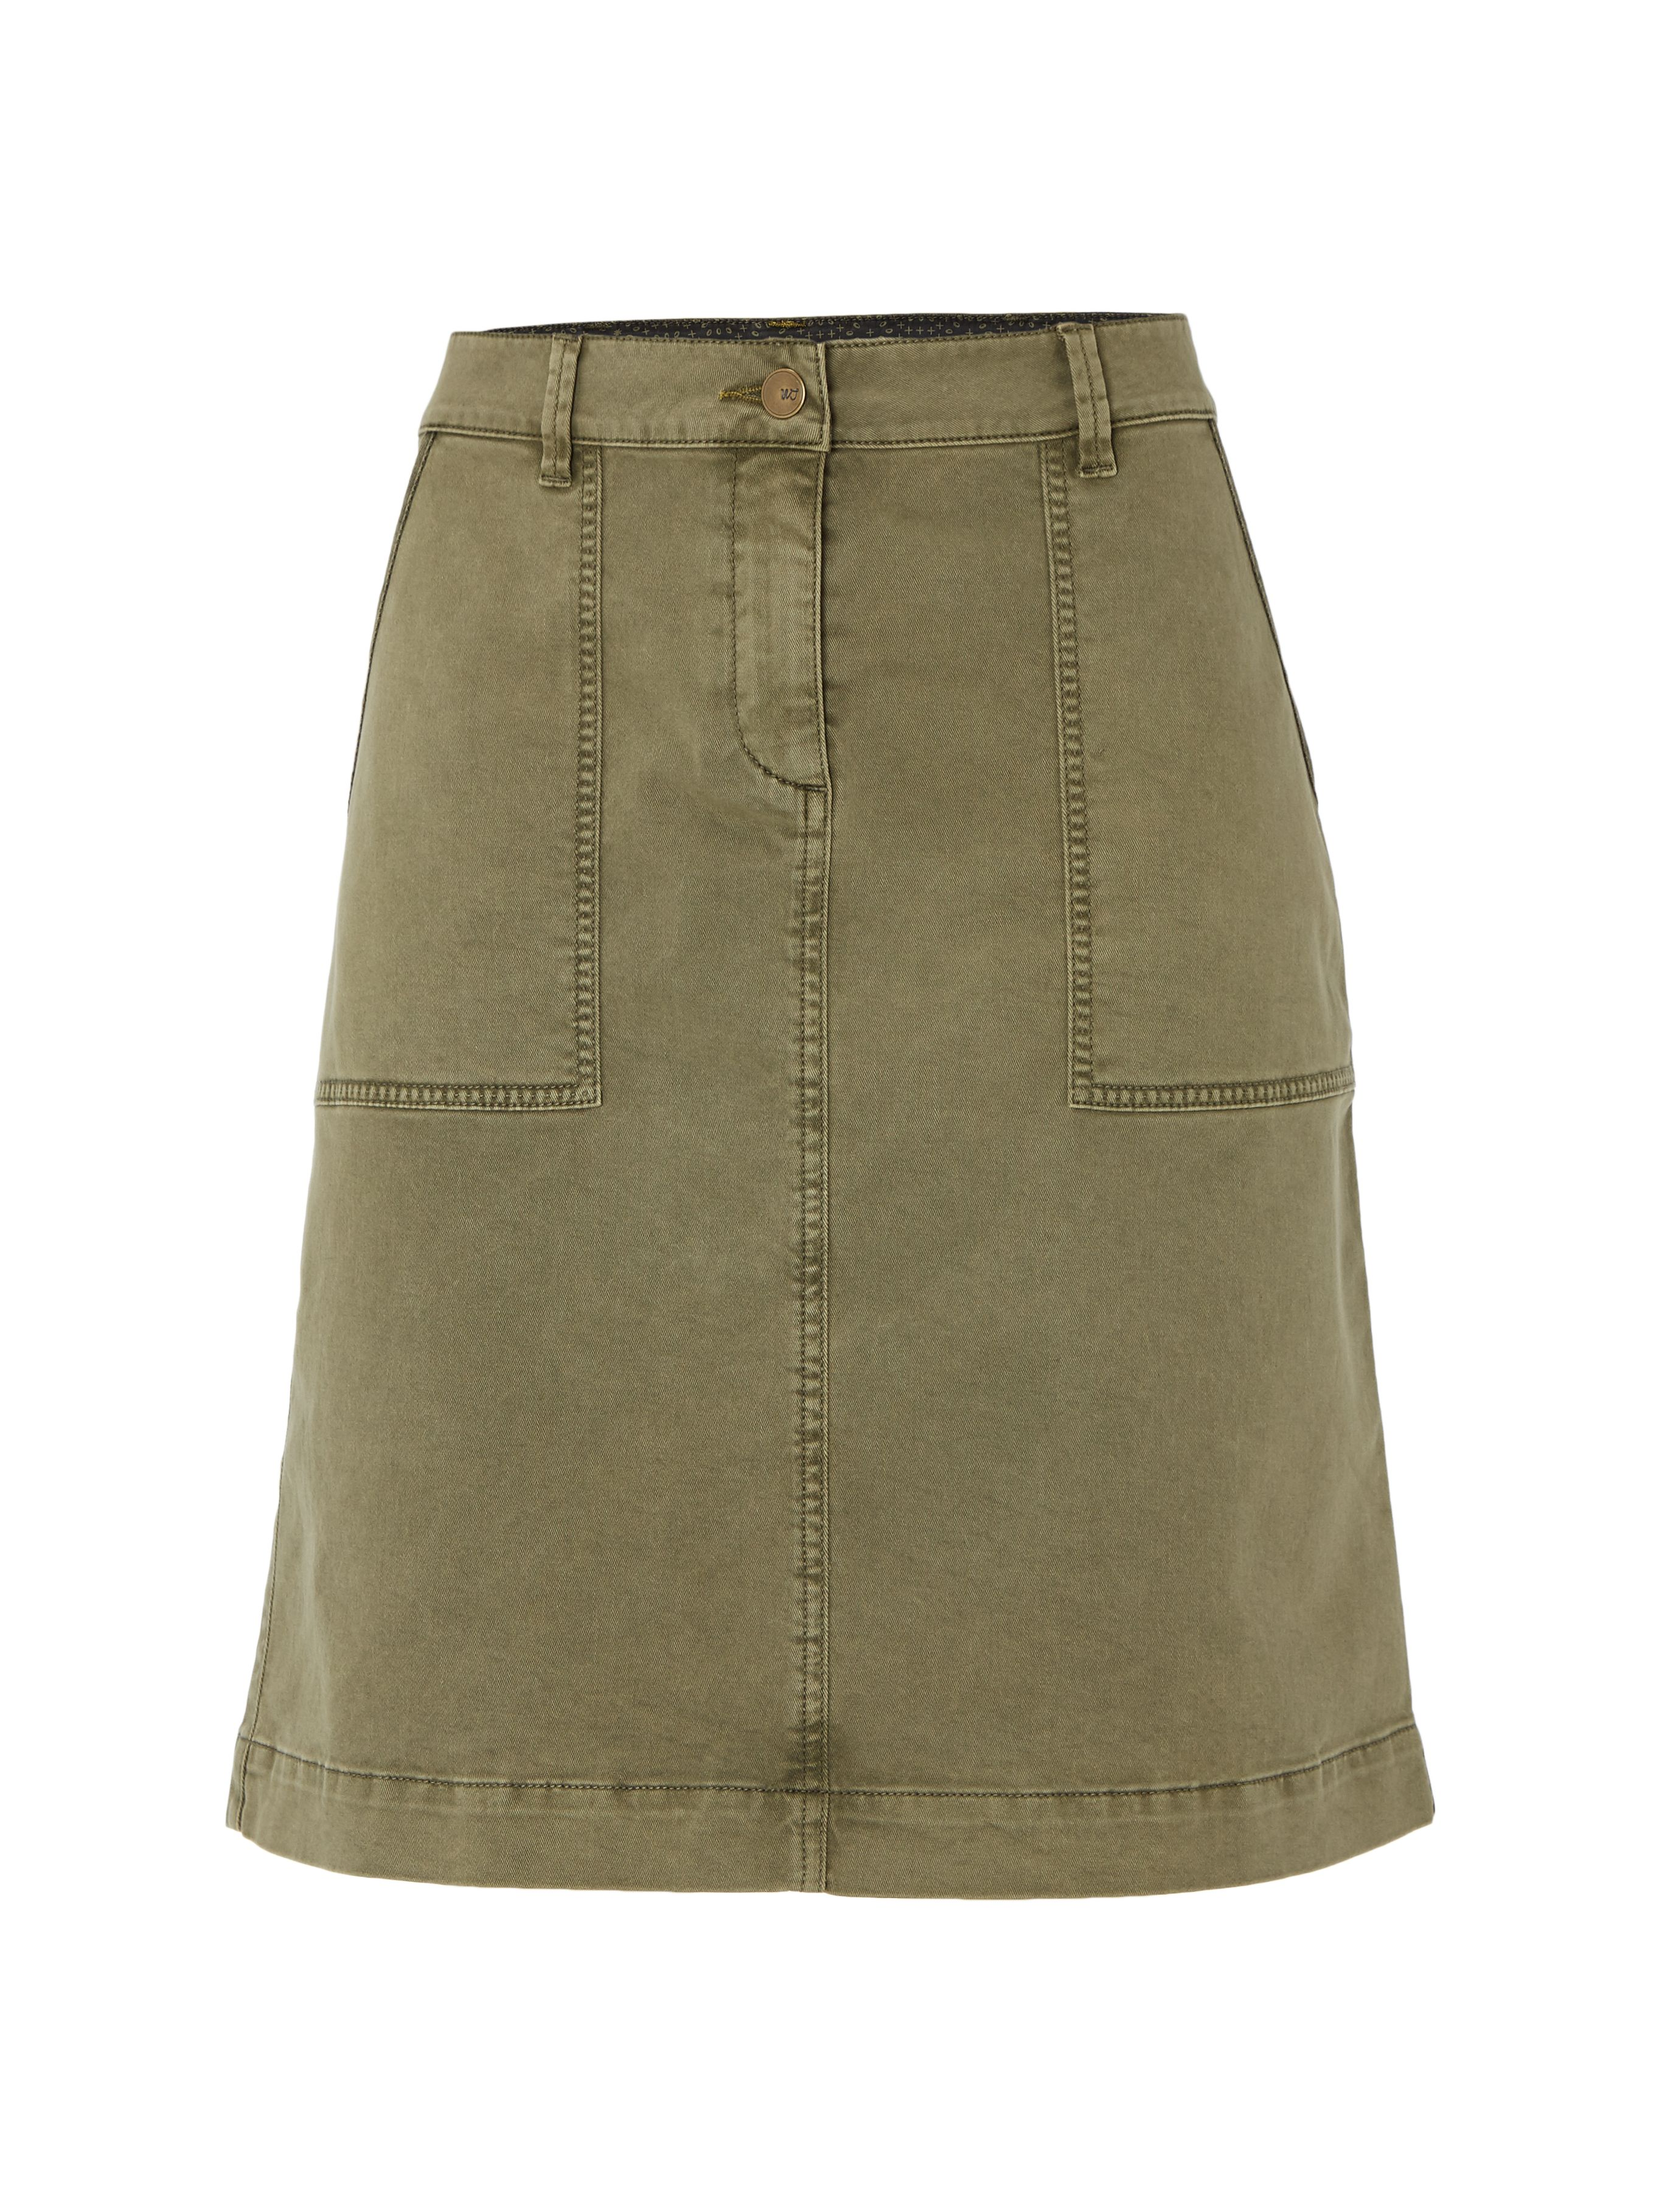 White Stuff Bessie Chino Skirt, Khaki